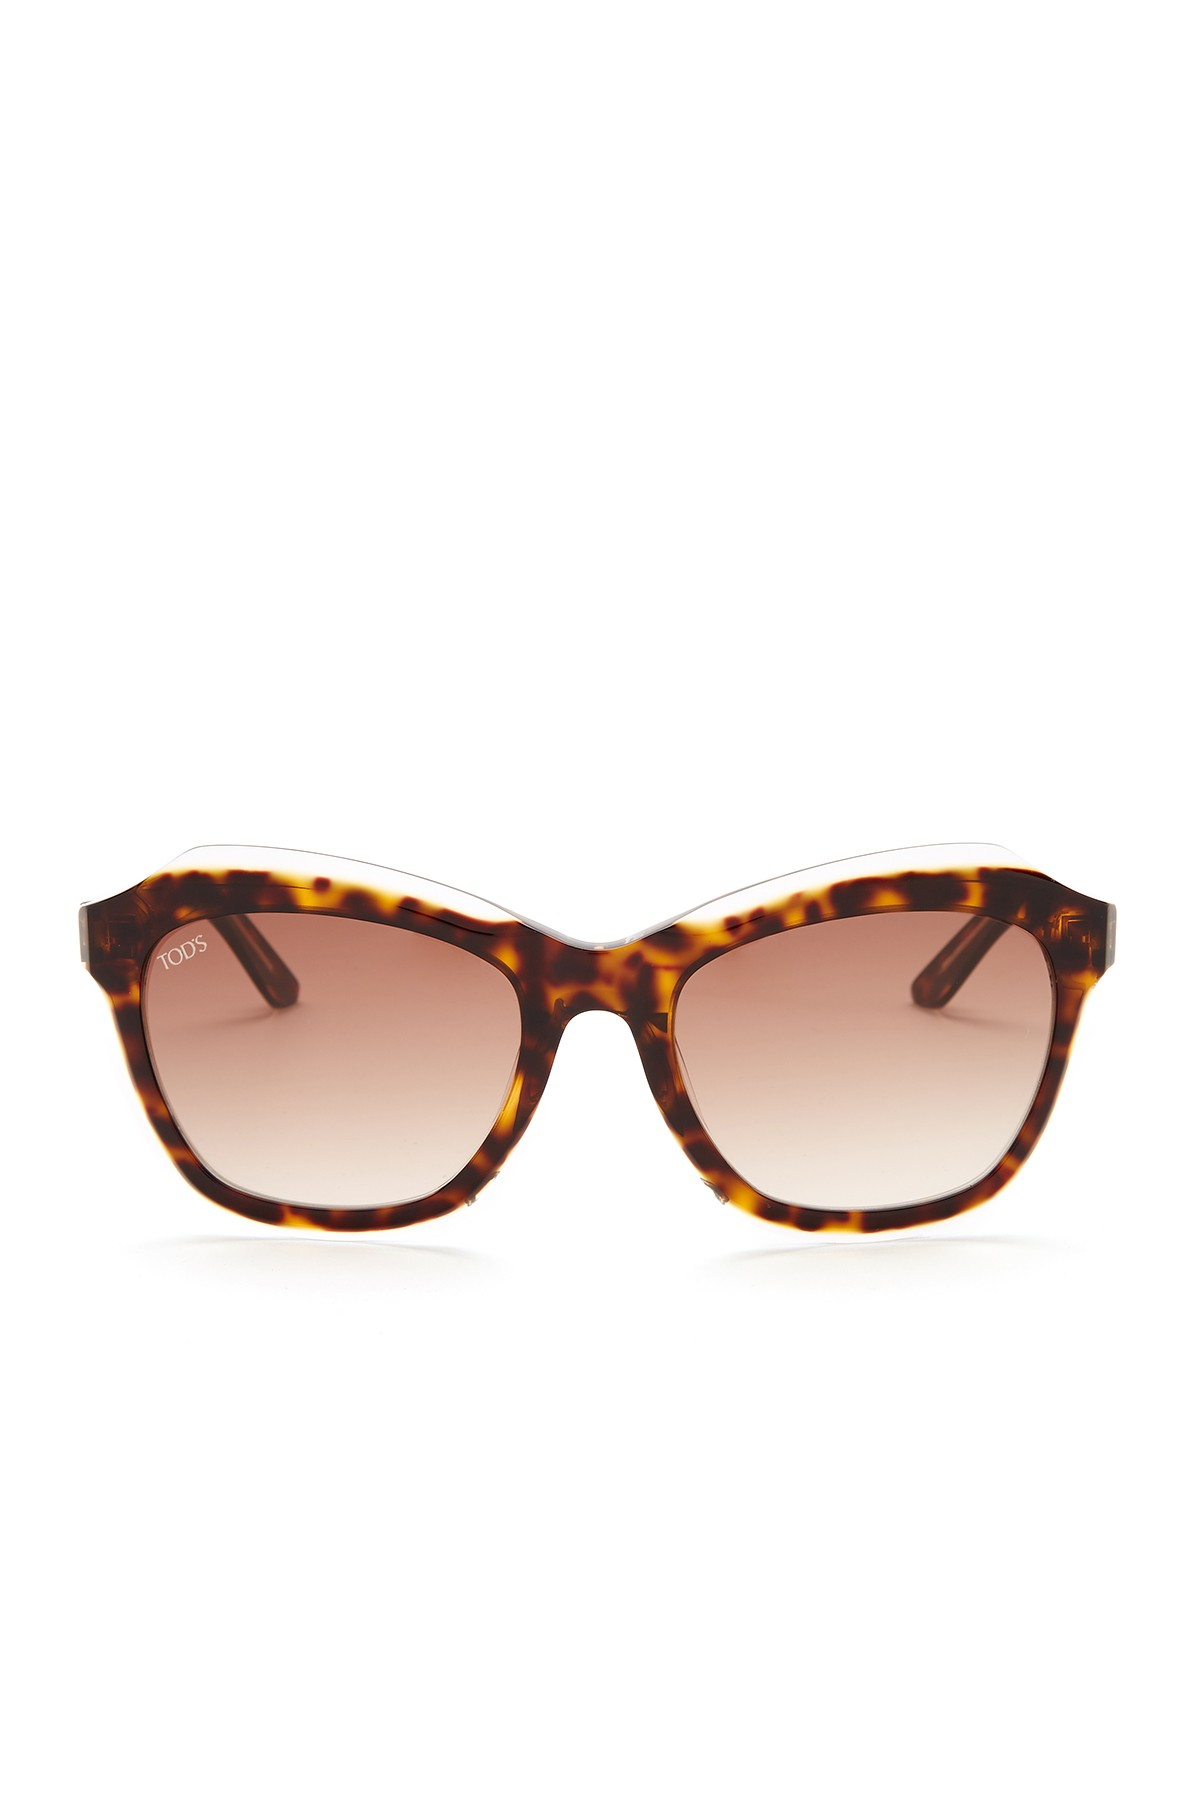 Tods Womens Cat Eye Acetate Frame Sunglasses in Brown Lyst